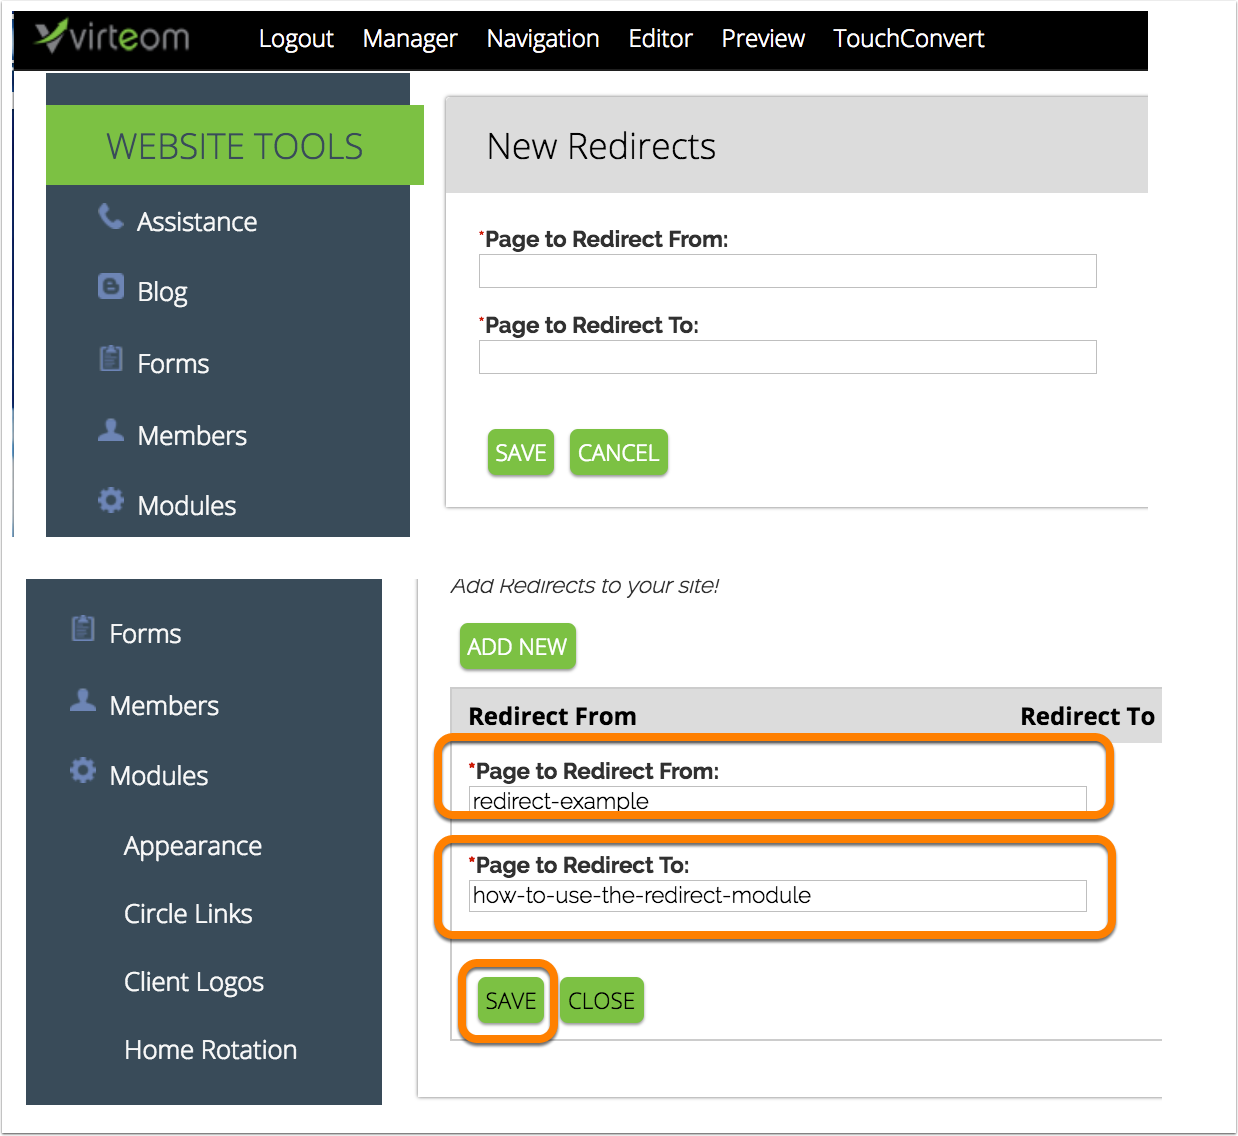 How to add a redirect in Virteom CMS